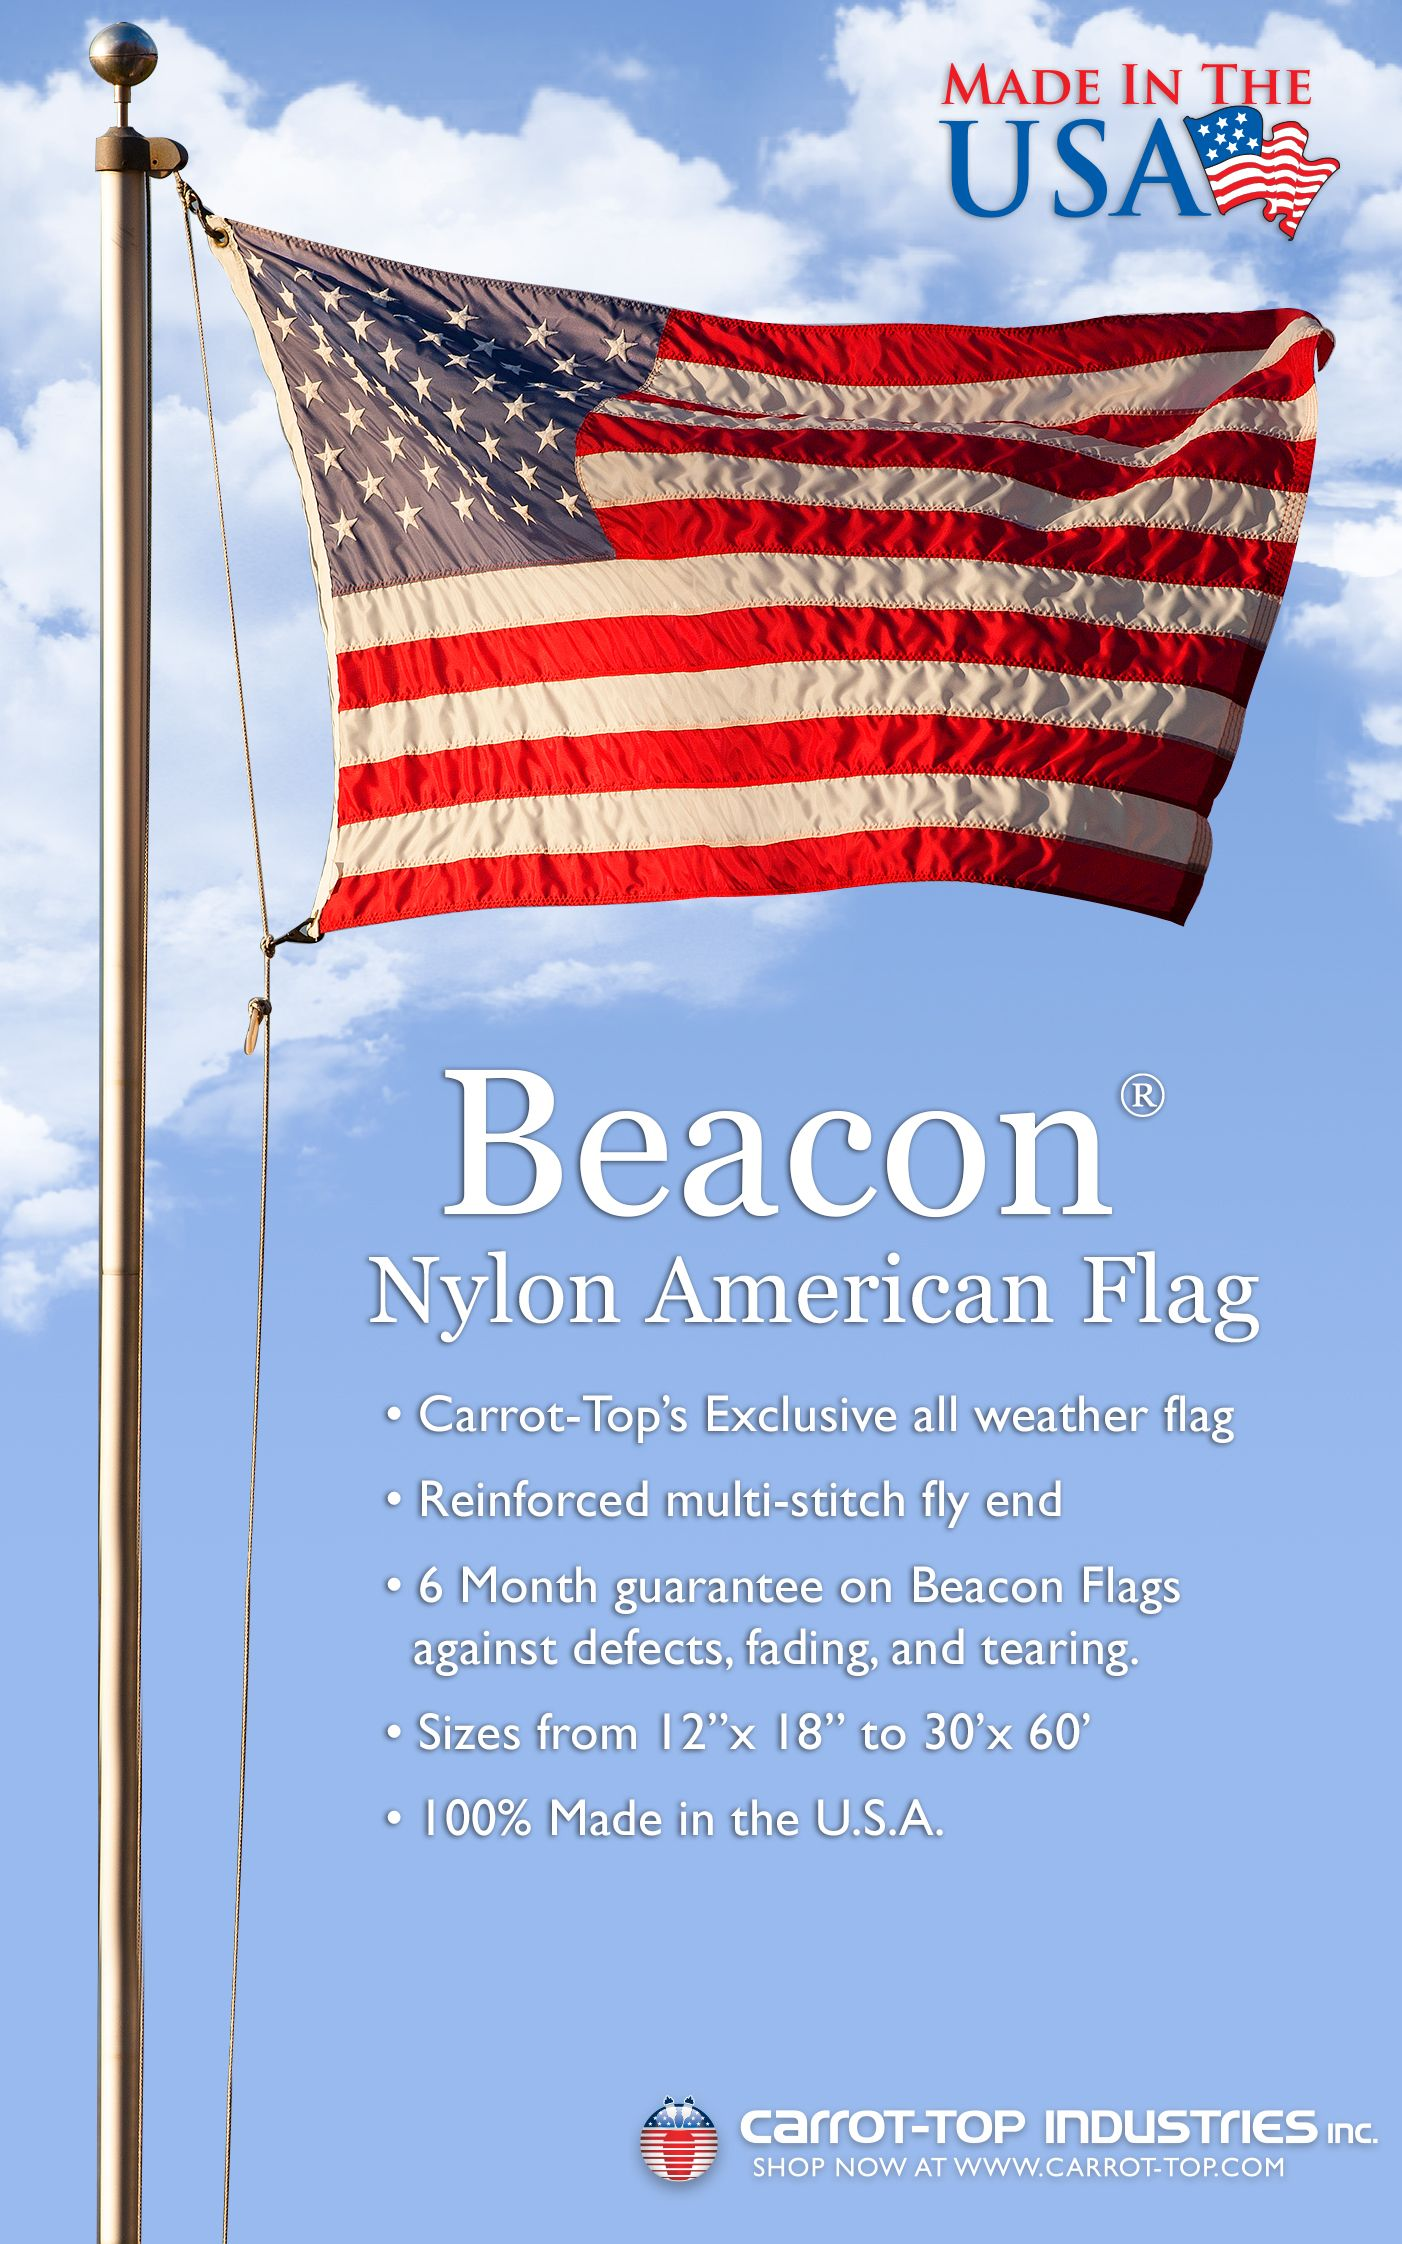 Made in the usa durable all weather nylon beacon american flag made in the usa durable all weather nylon beacon american flag publicscrutiny Choice Image